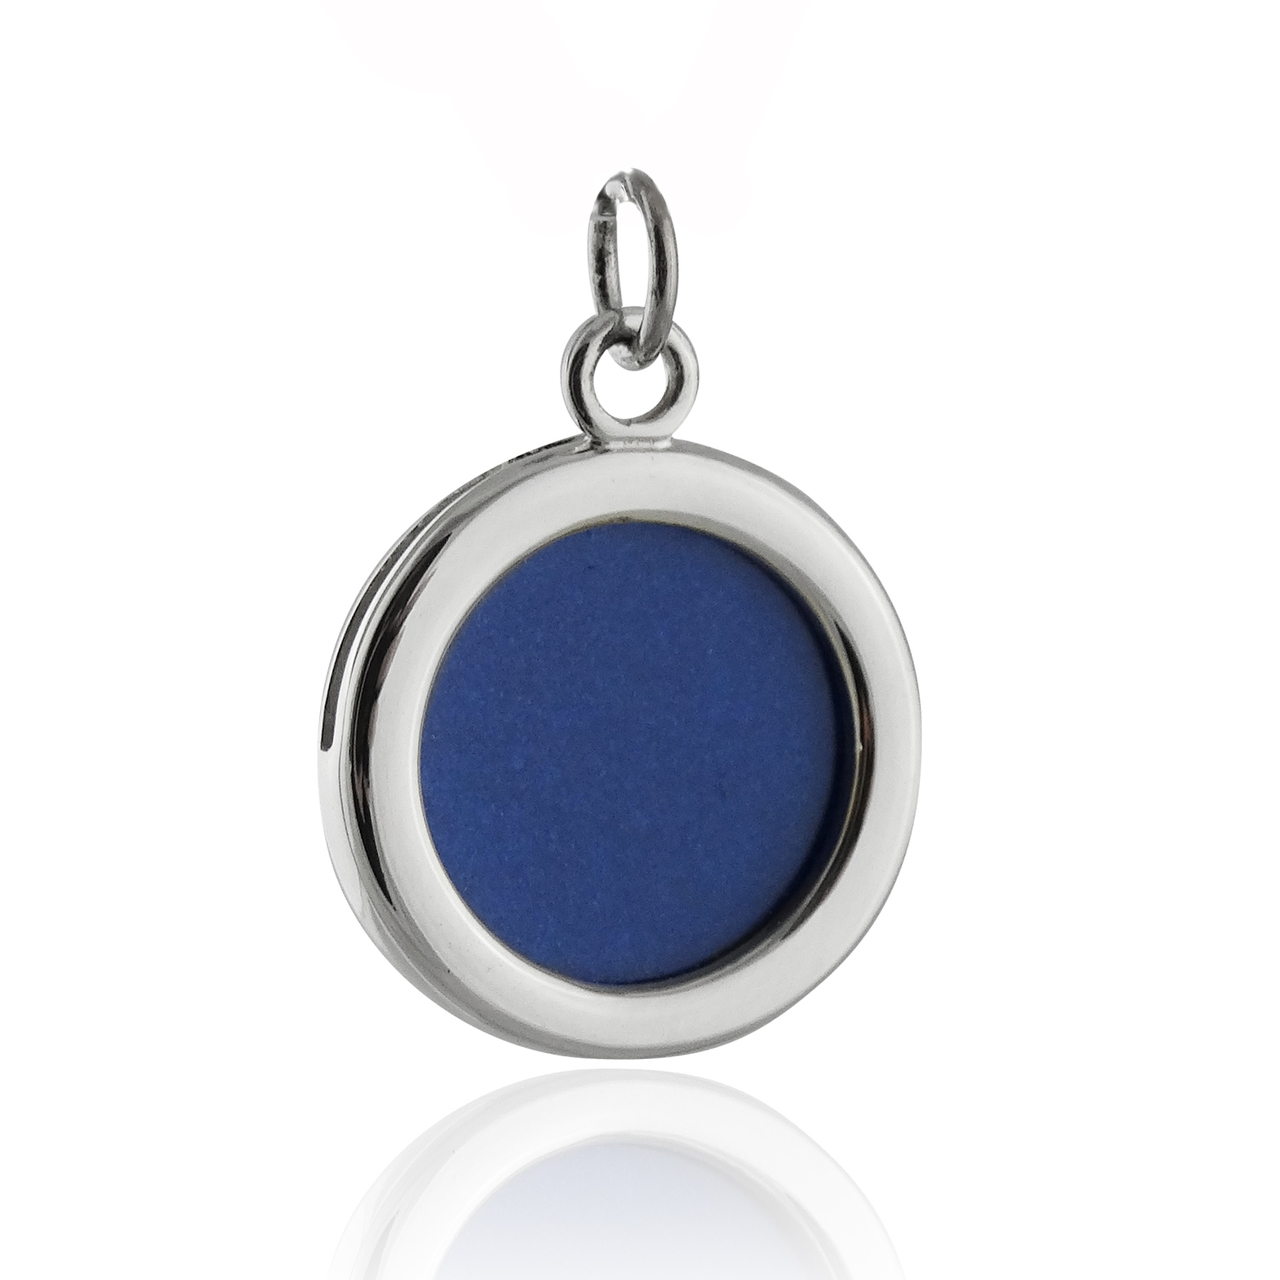 Round Photo Charm 2-Sided - 925 Sterling Silver